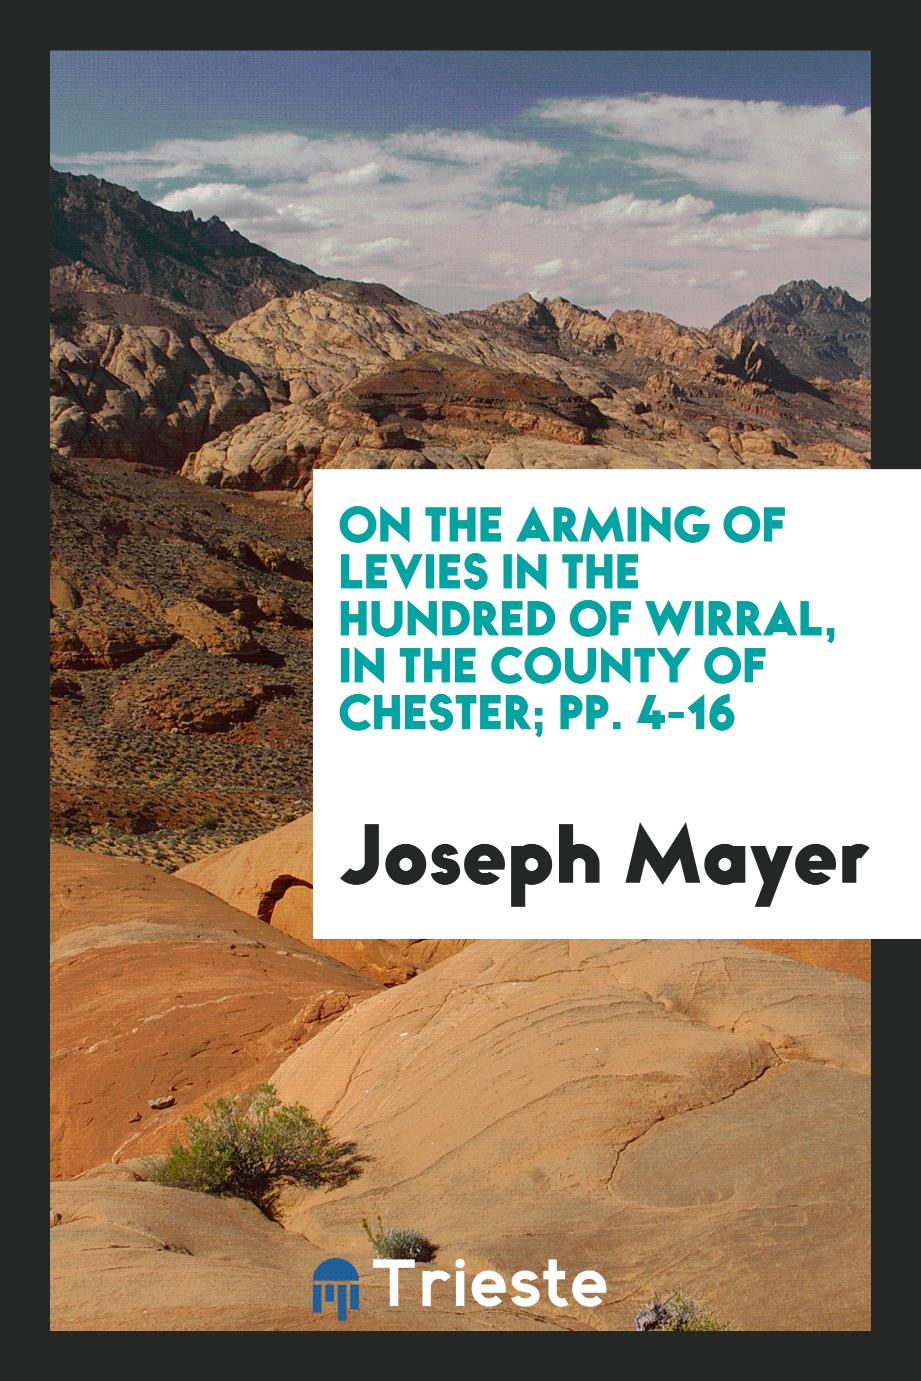 On the Arming of Levies in the Hundred of Wirral, in the County of Chester; pp. 4-16